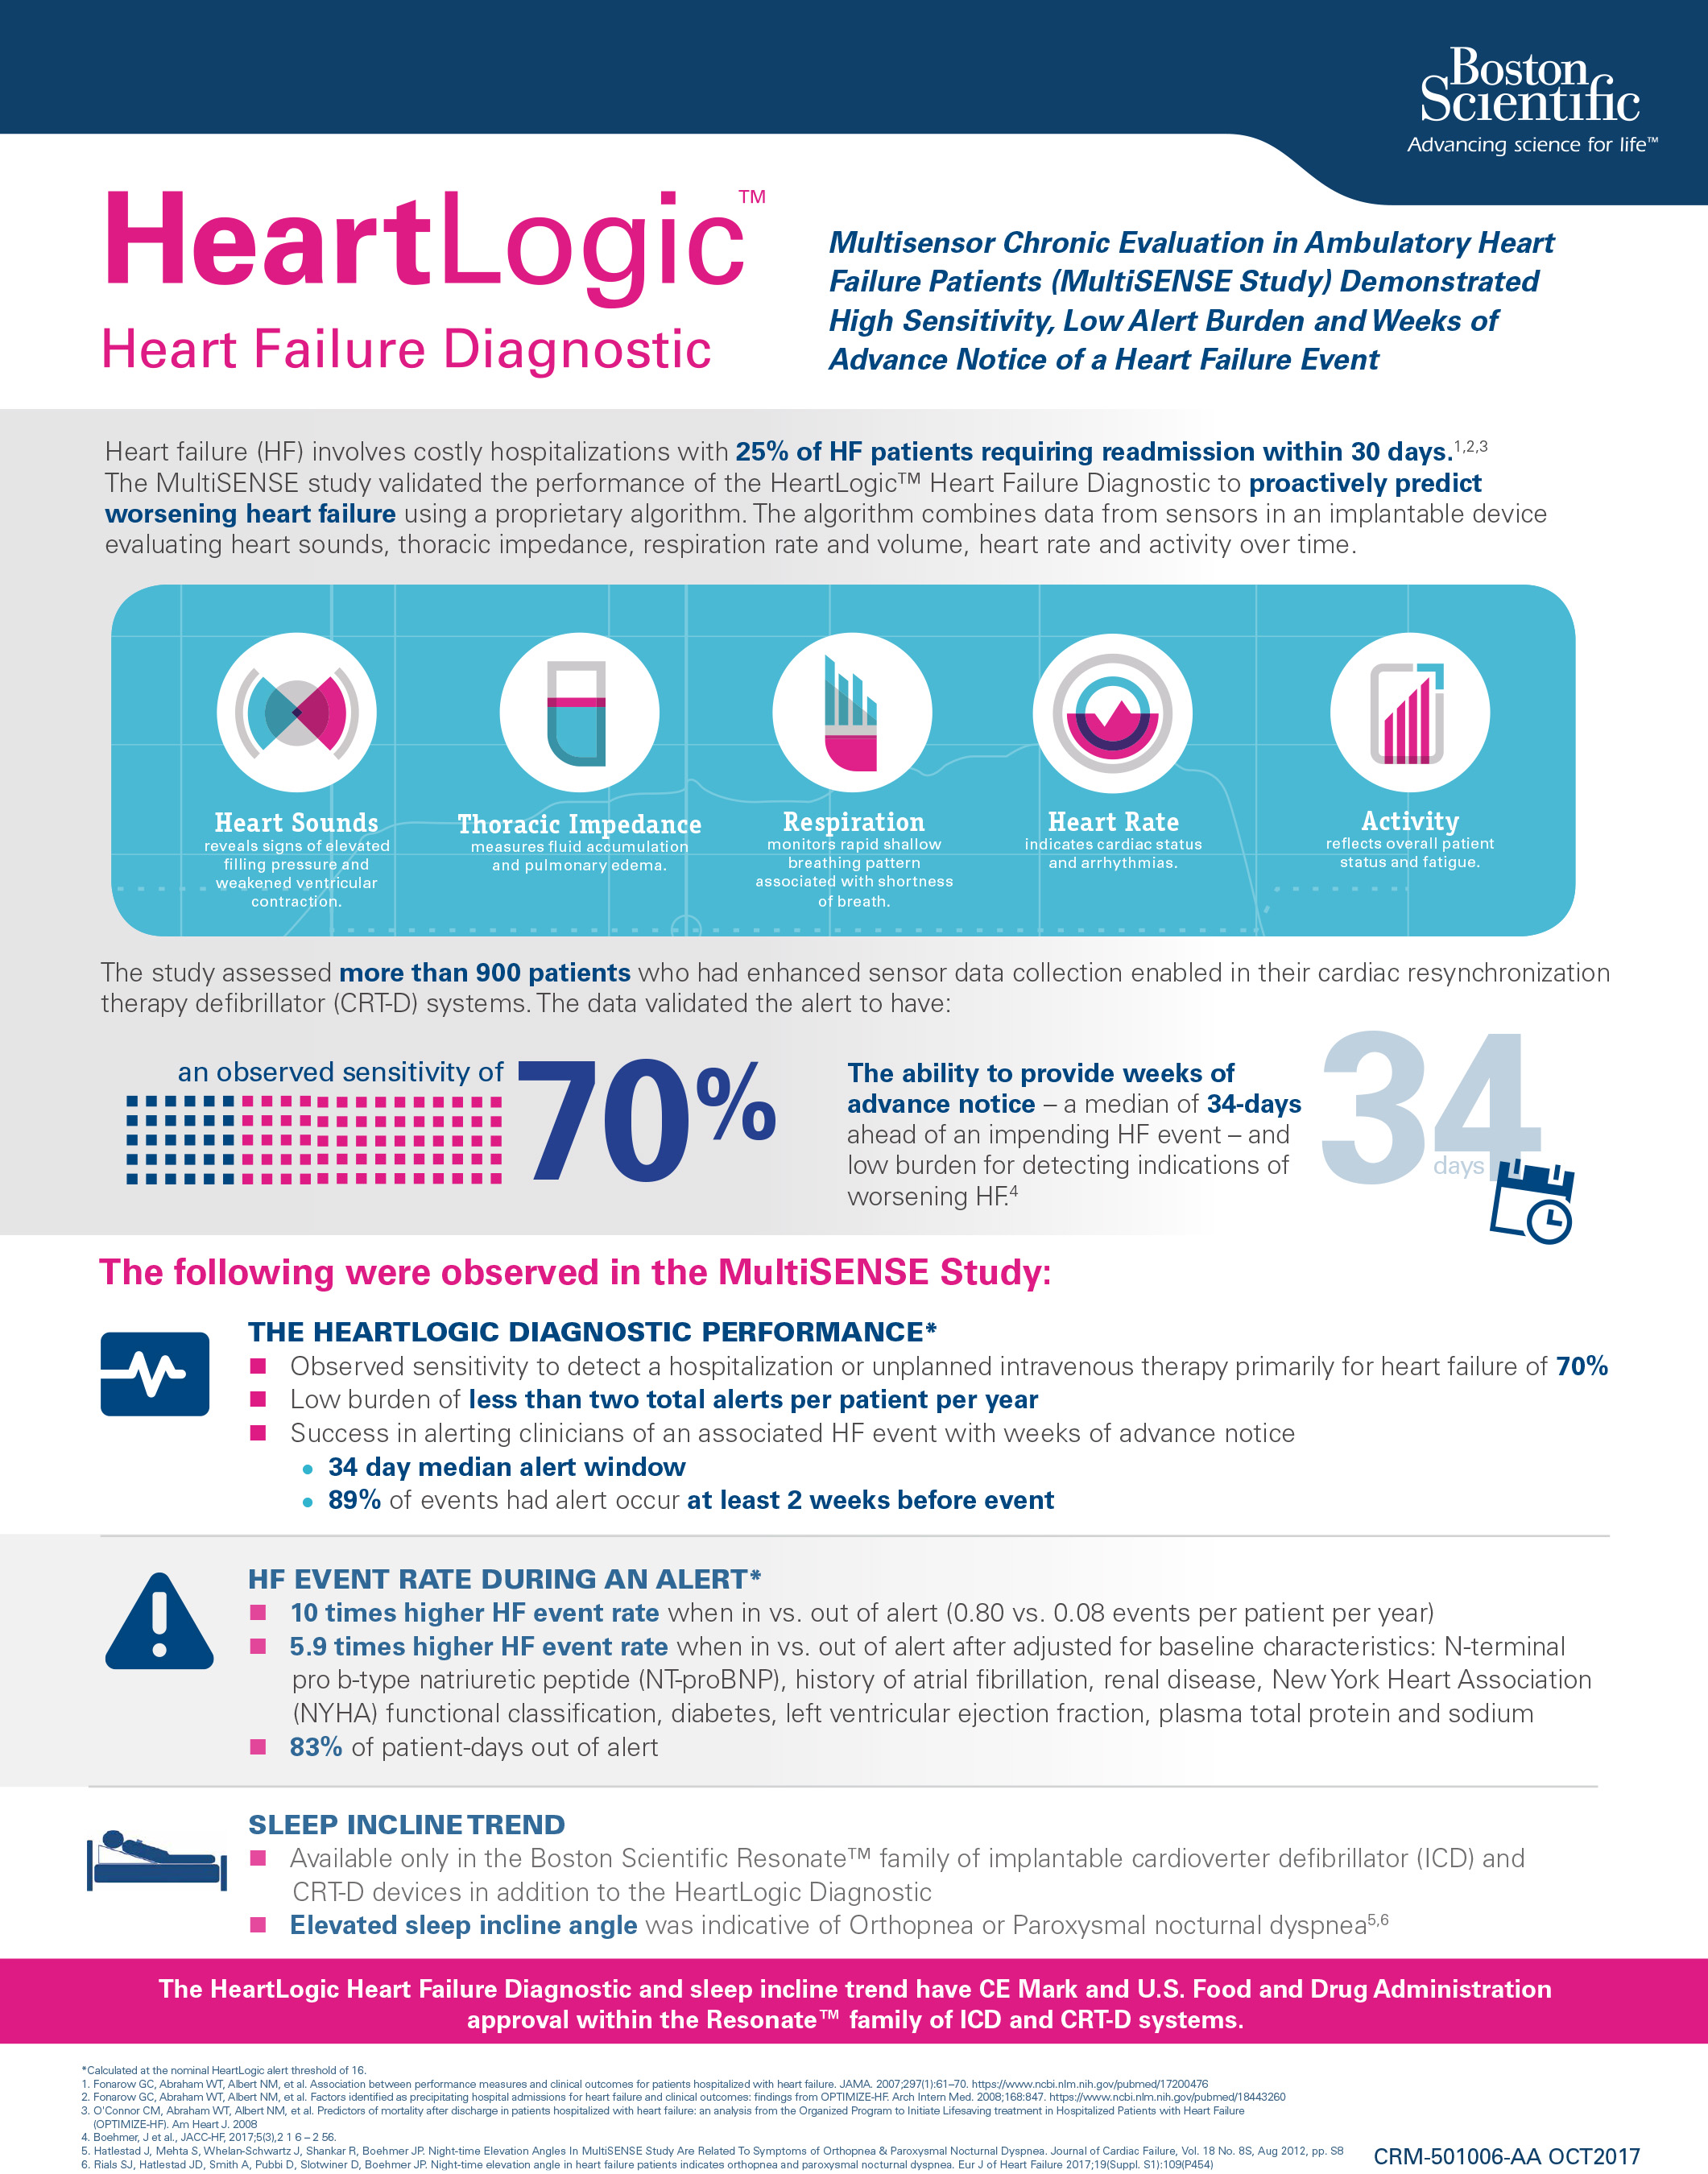 MultiSENSE study results: The HeartLogic™ Diagnostic